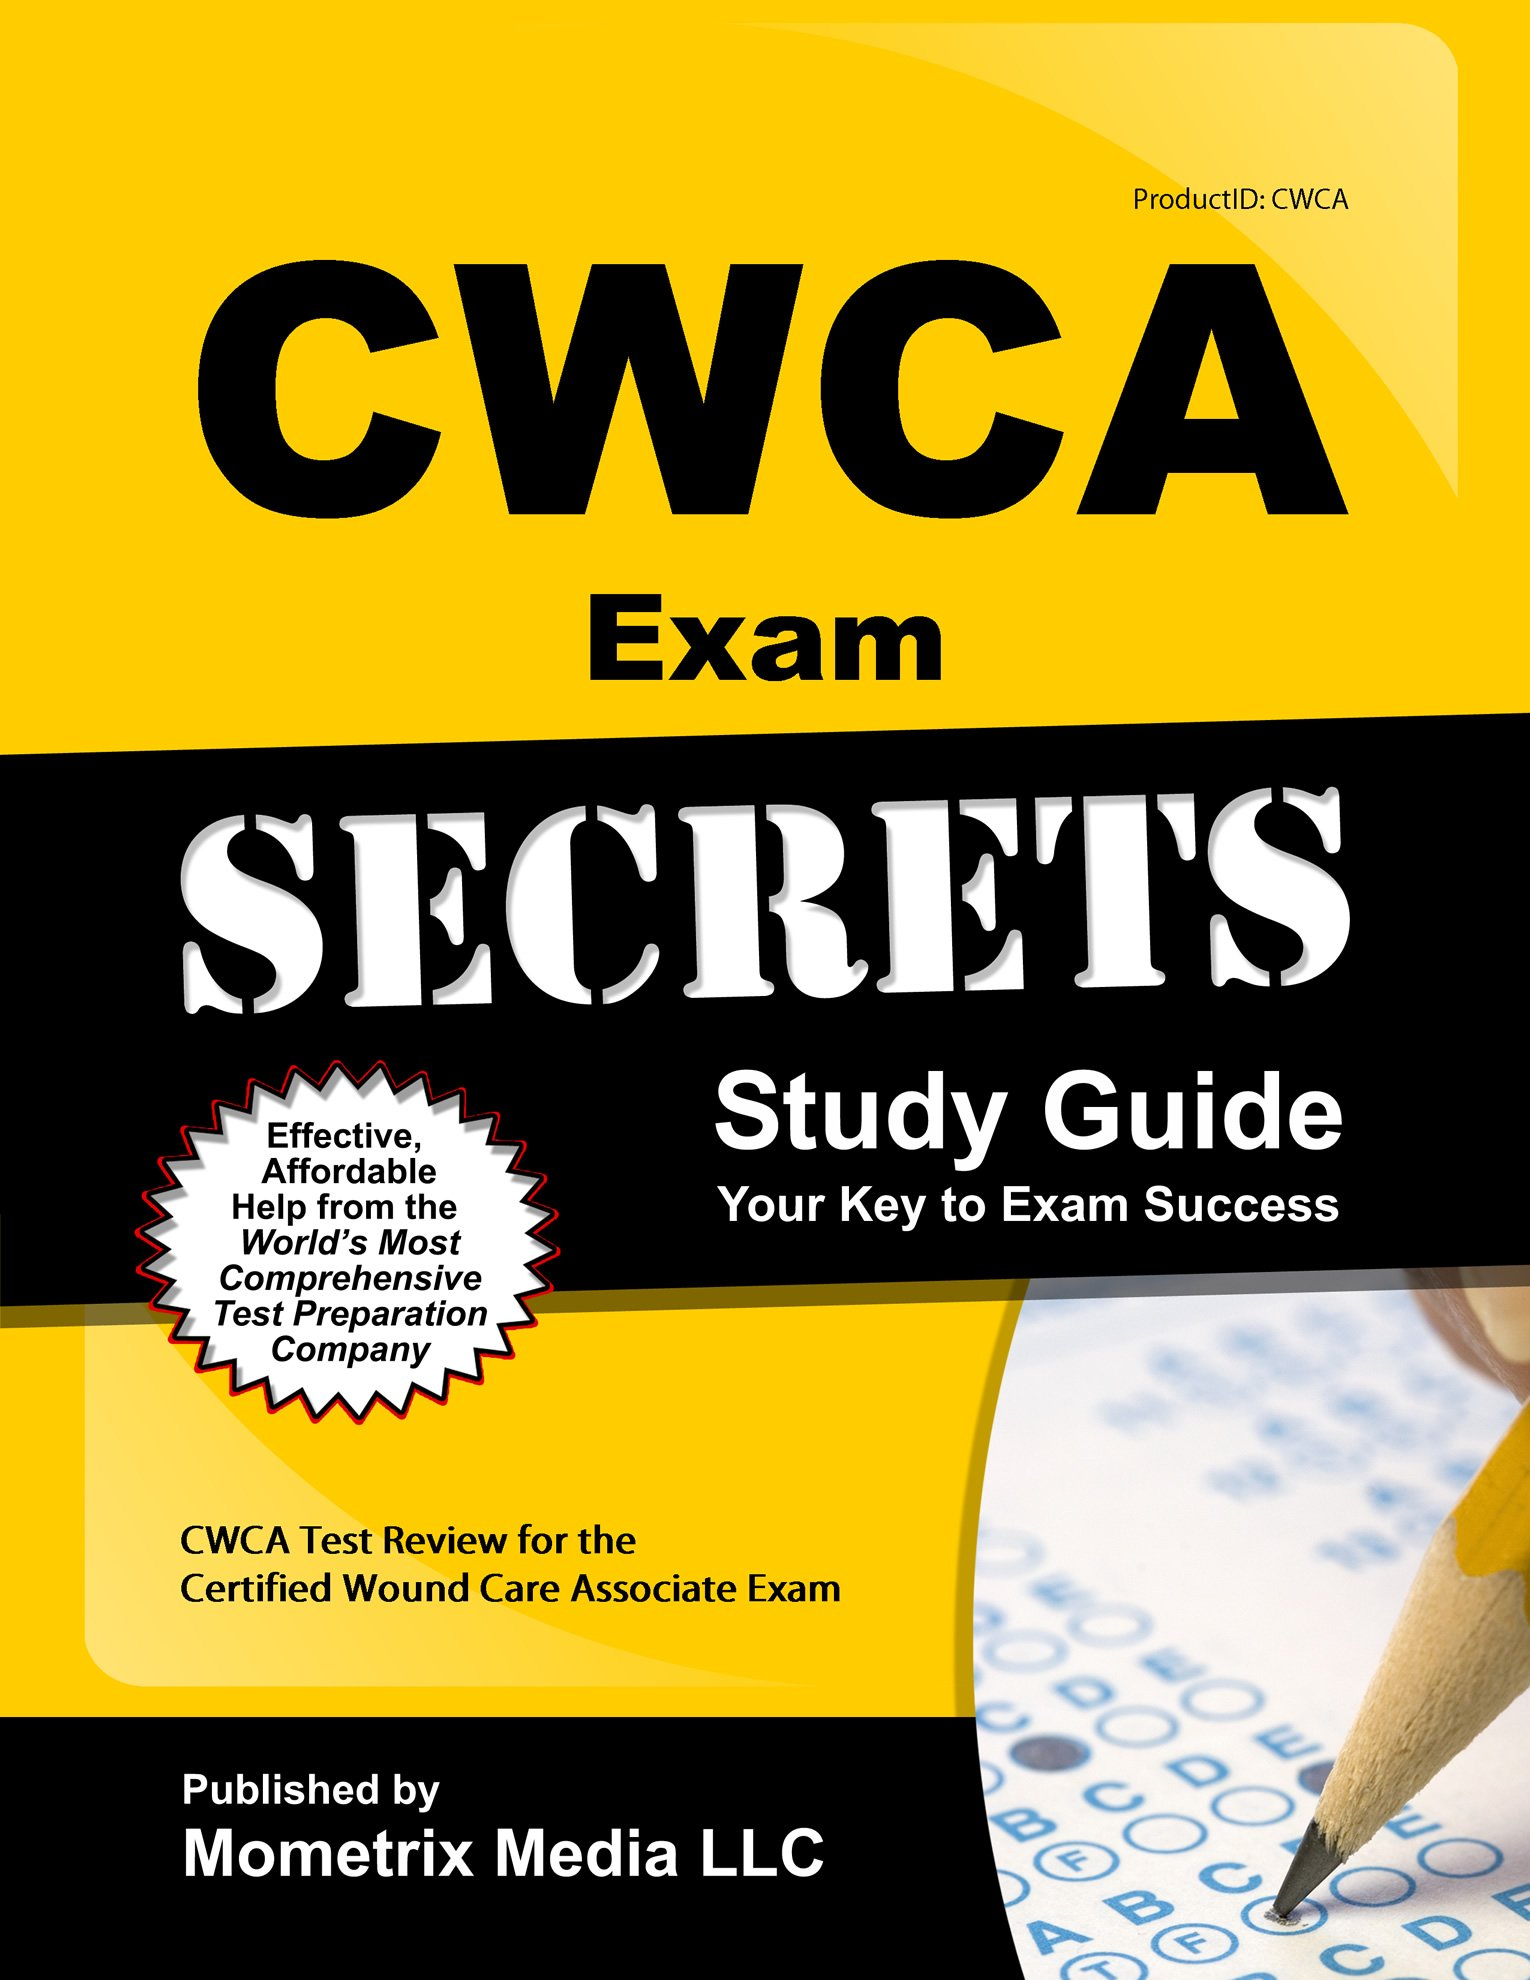 CWCA Exam Secrets Study Guide: CWCA Test Review for the Certified Wound Care Associate Exam